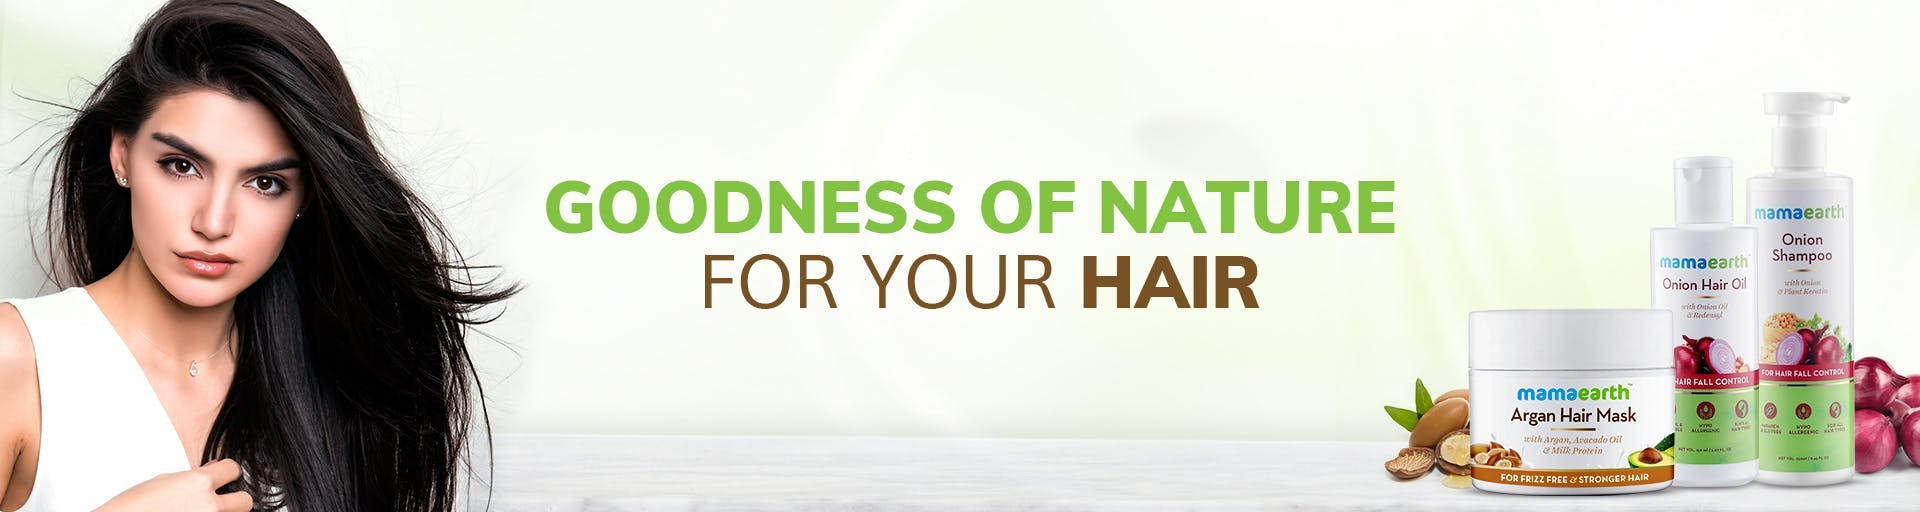 mamaearth.in - Hair Care starting at just ₹299